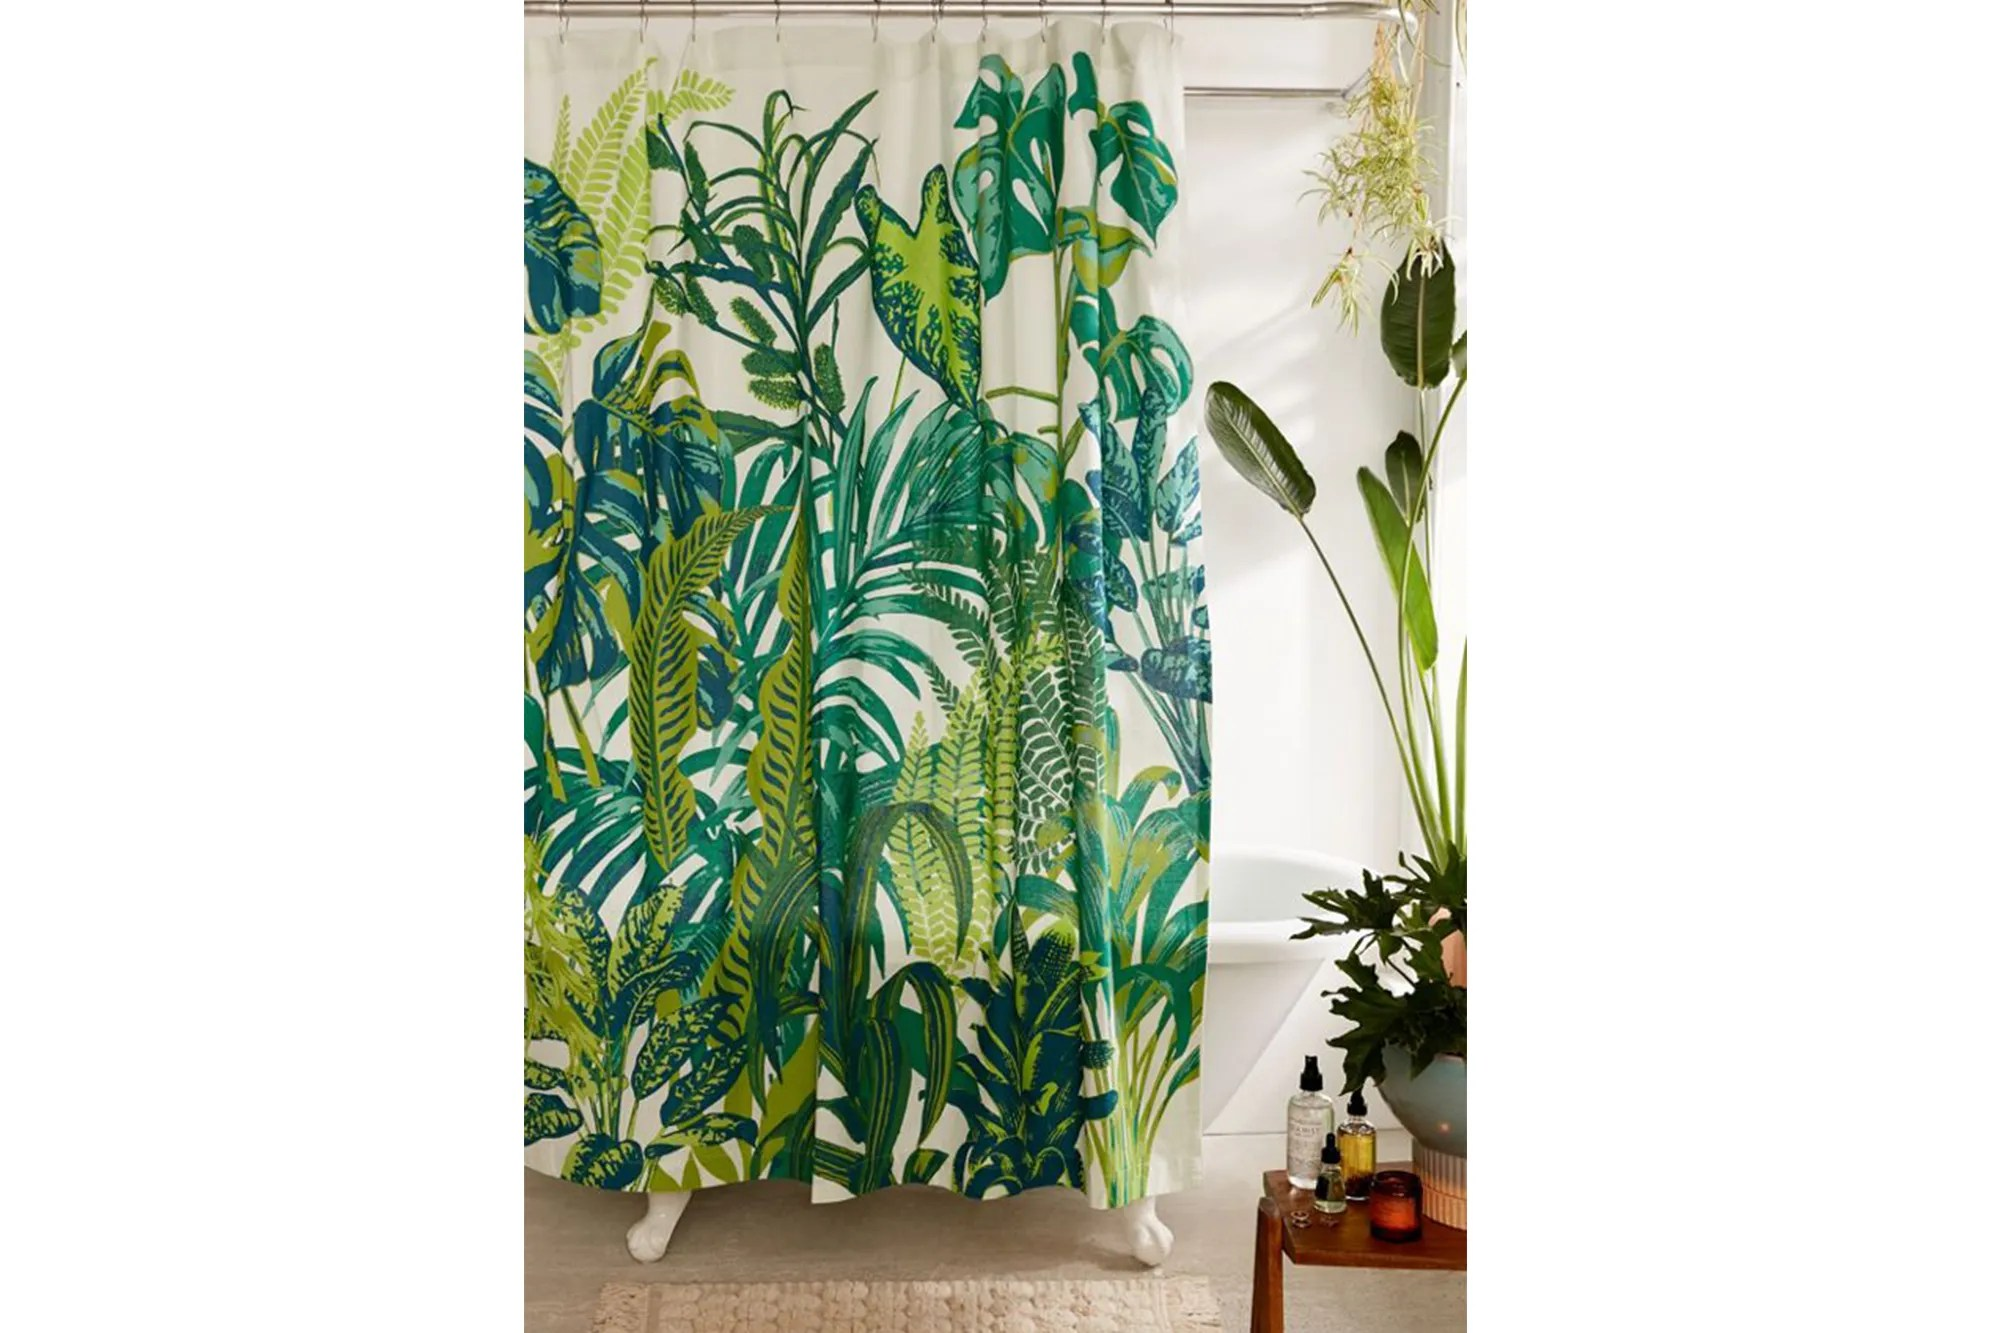 The Best Shower Curtains Are Big Loud And Way Over The Top